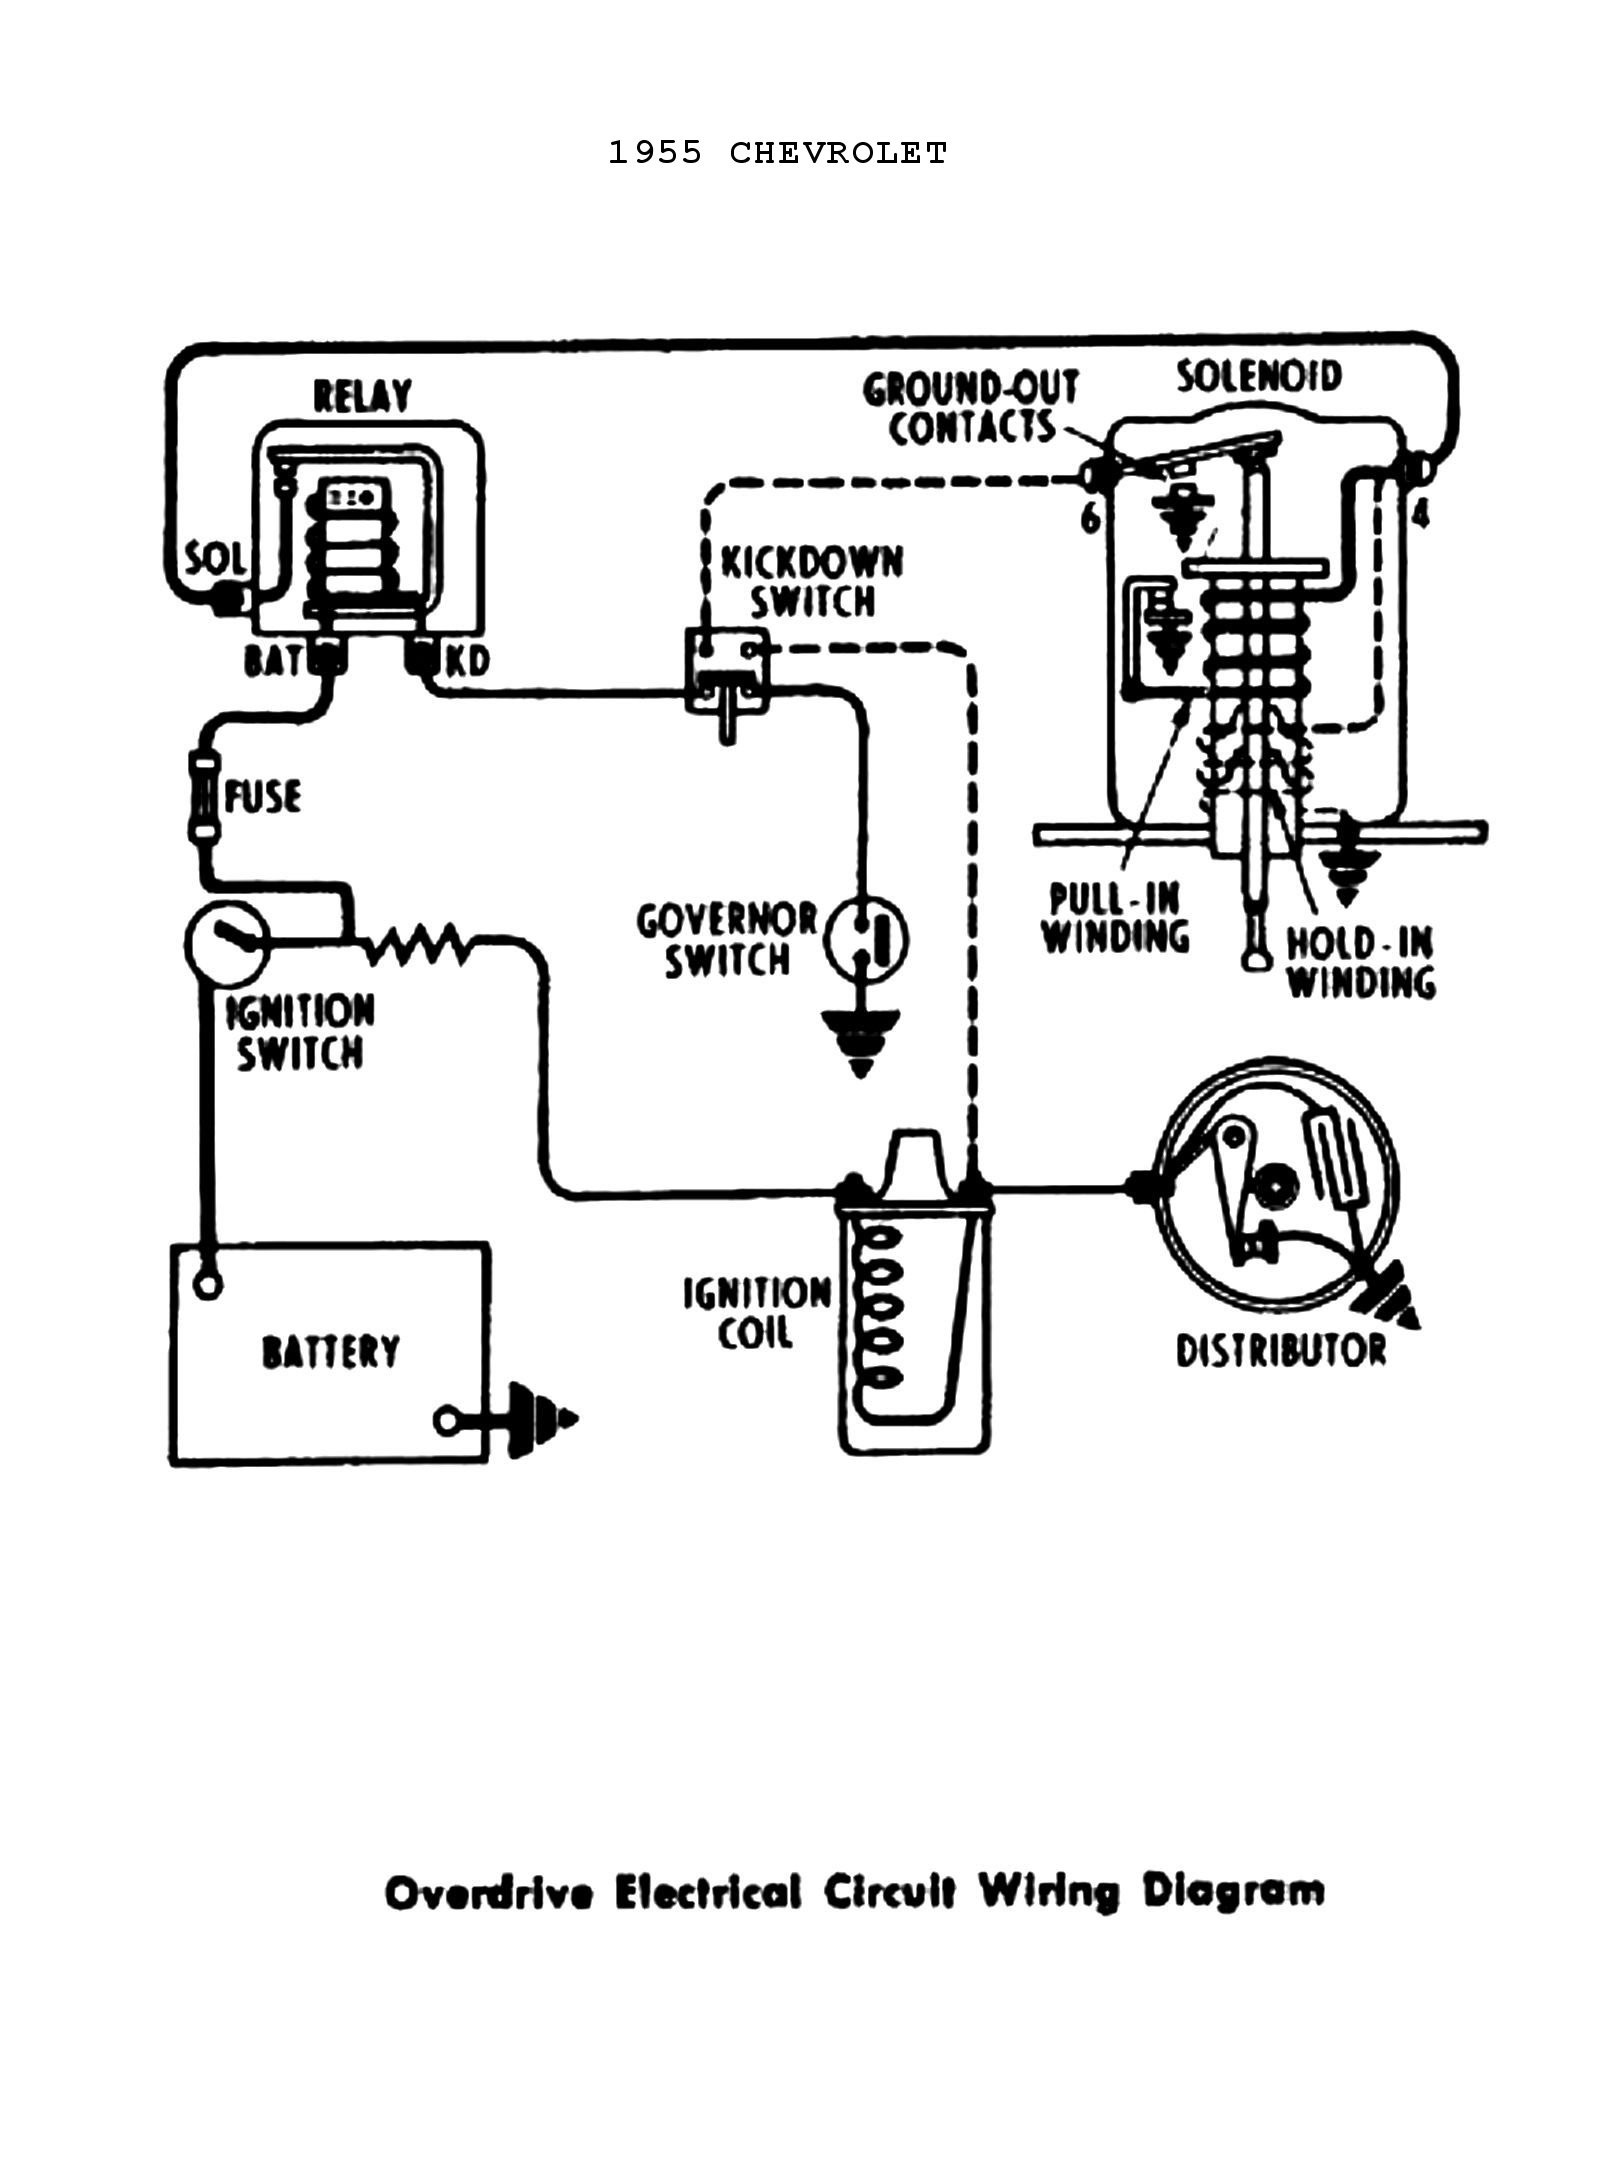 Mack truck fuel system diagram 1955 chevy fuel tank diagram 1955 chevy ignition wiring diagram of